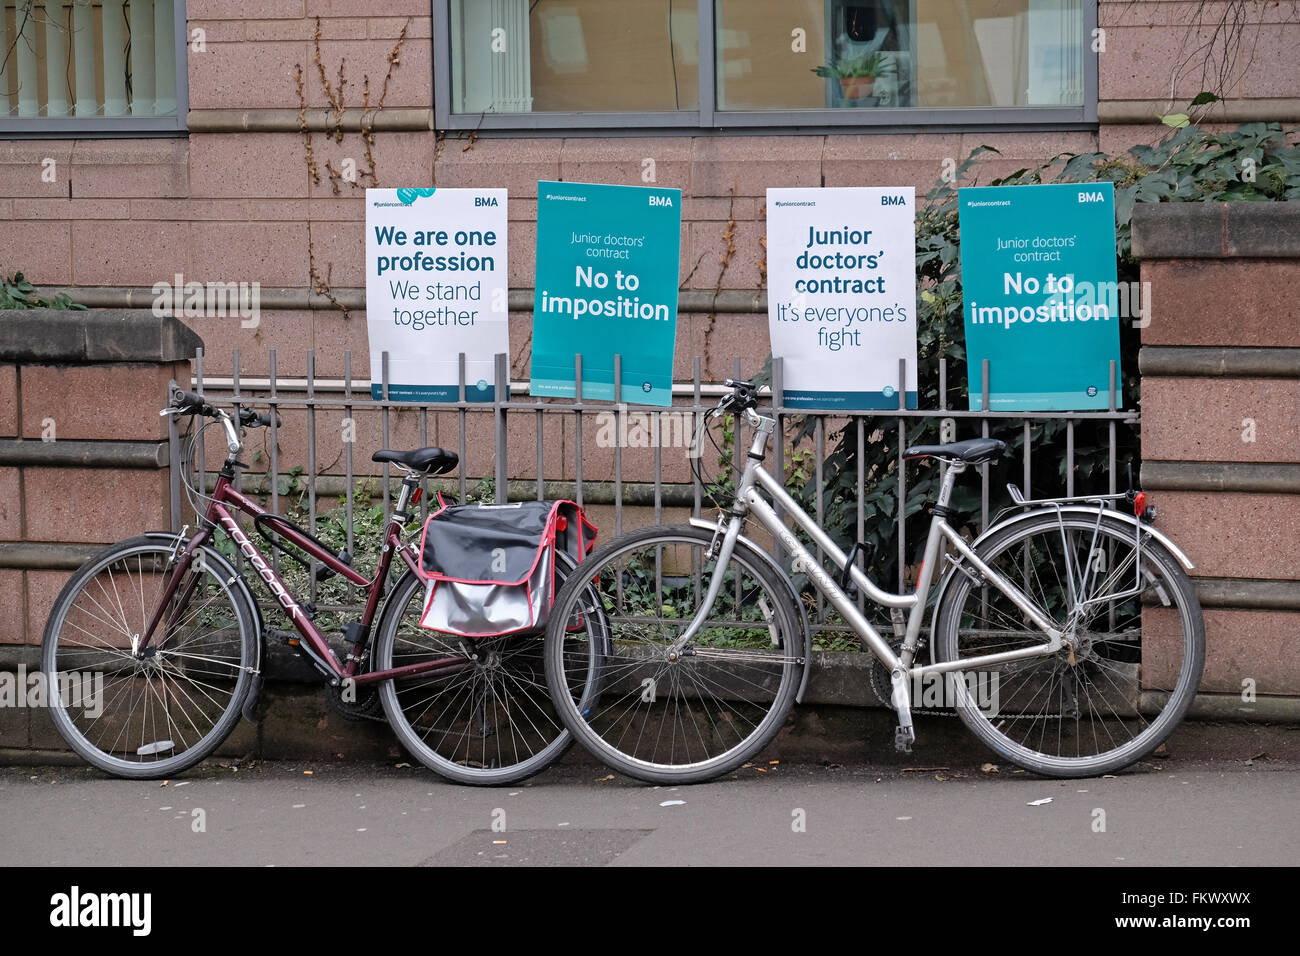 Posters supporting striking junior doctors outside the Bristol Royal Infirmary in Bristol, England on 10 March 2016. Stock Photo